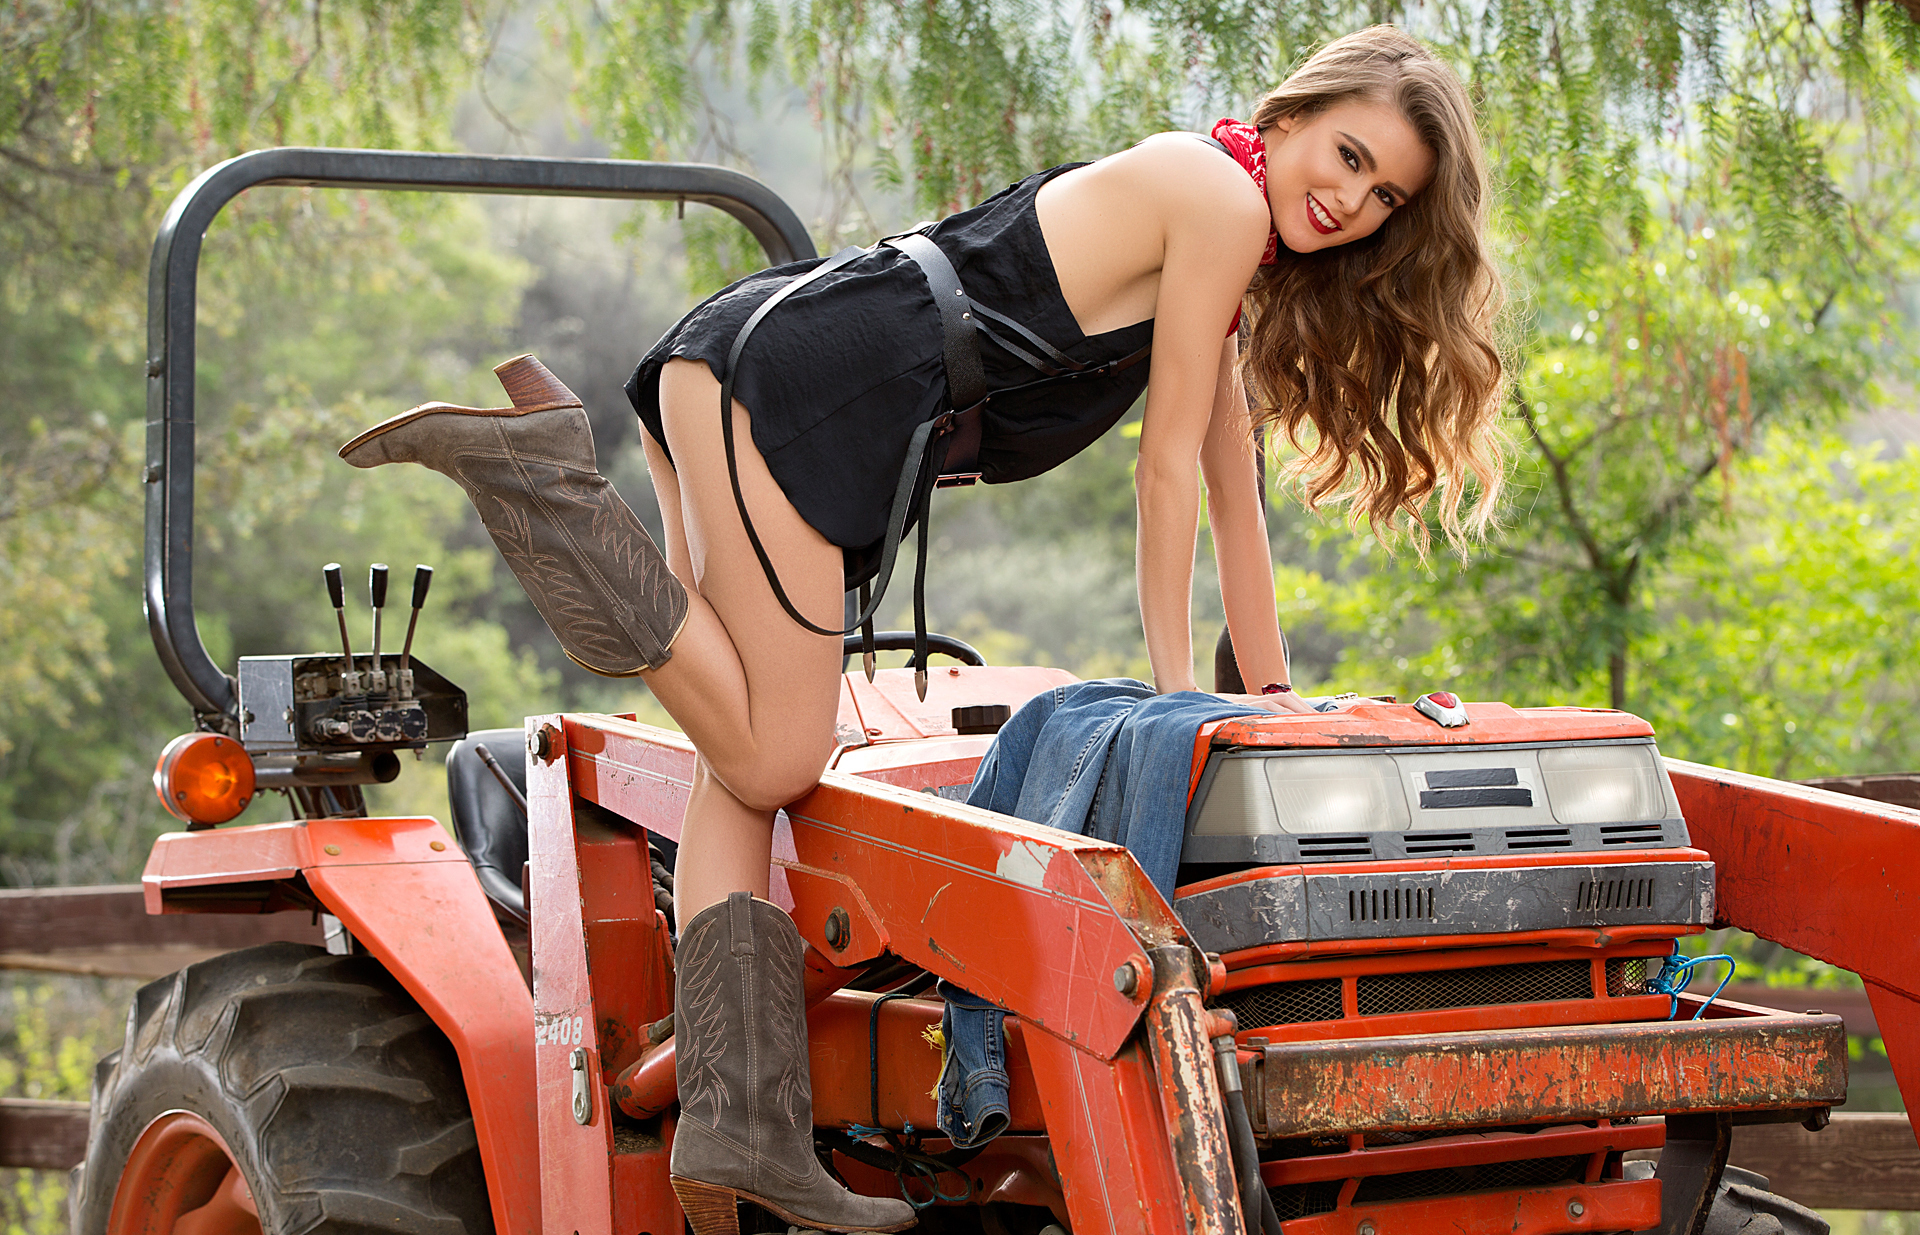 Sexy girls on tractors